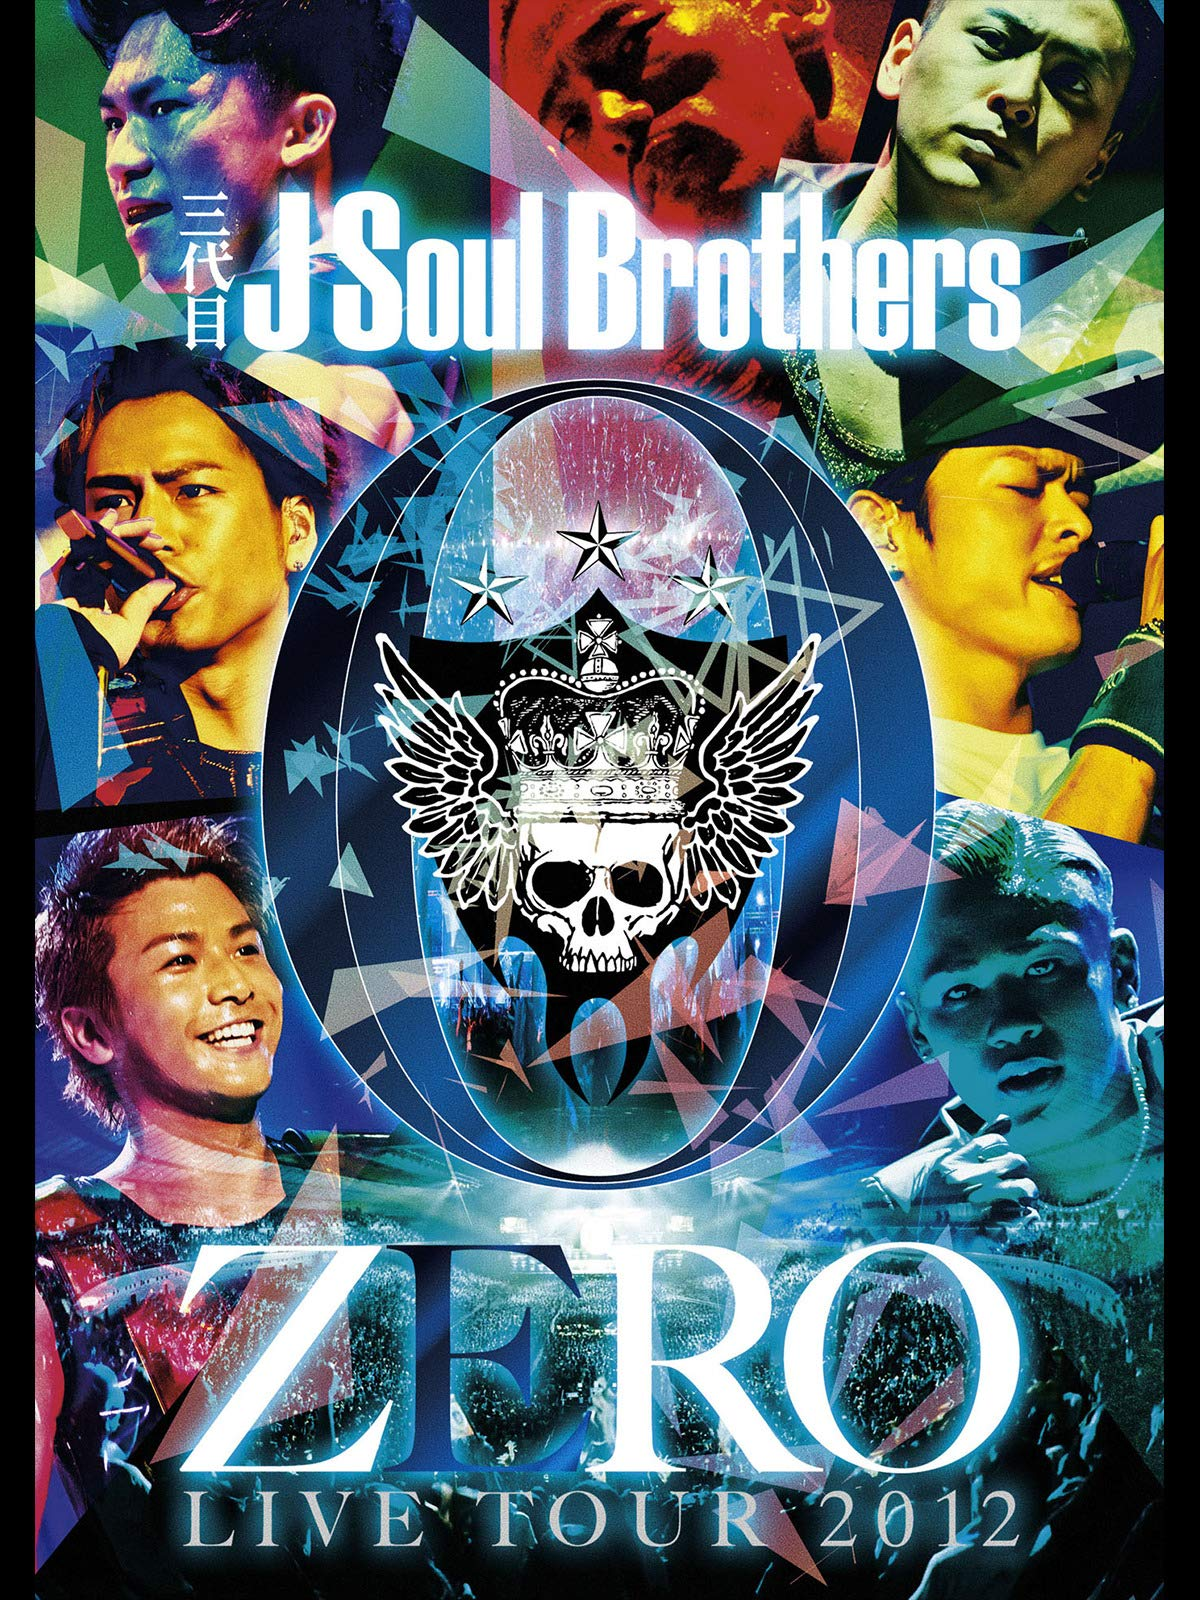 Amazon Co Jp 三代目j Soul Brothers Live Tour 12 0 Zero 三代目 J Soul Brothers From Exile Tribe Generic